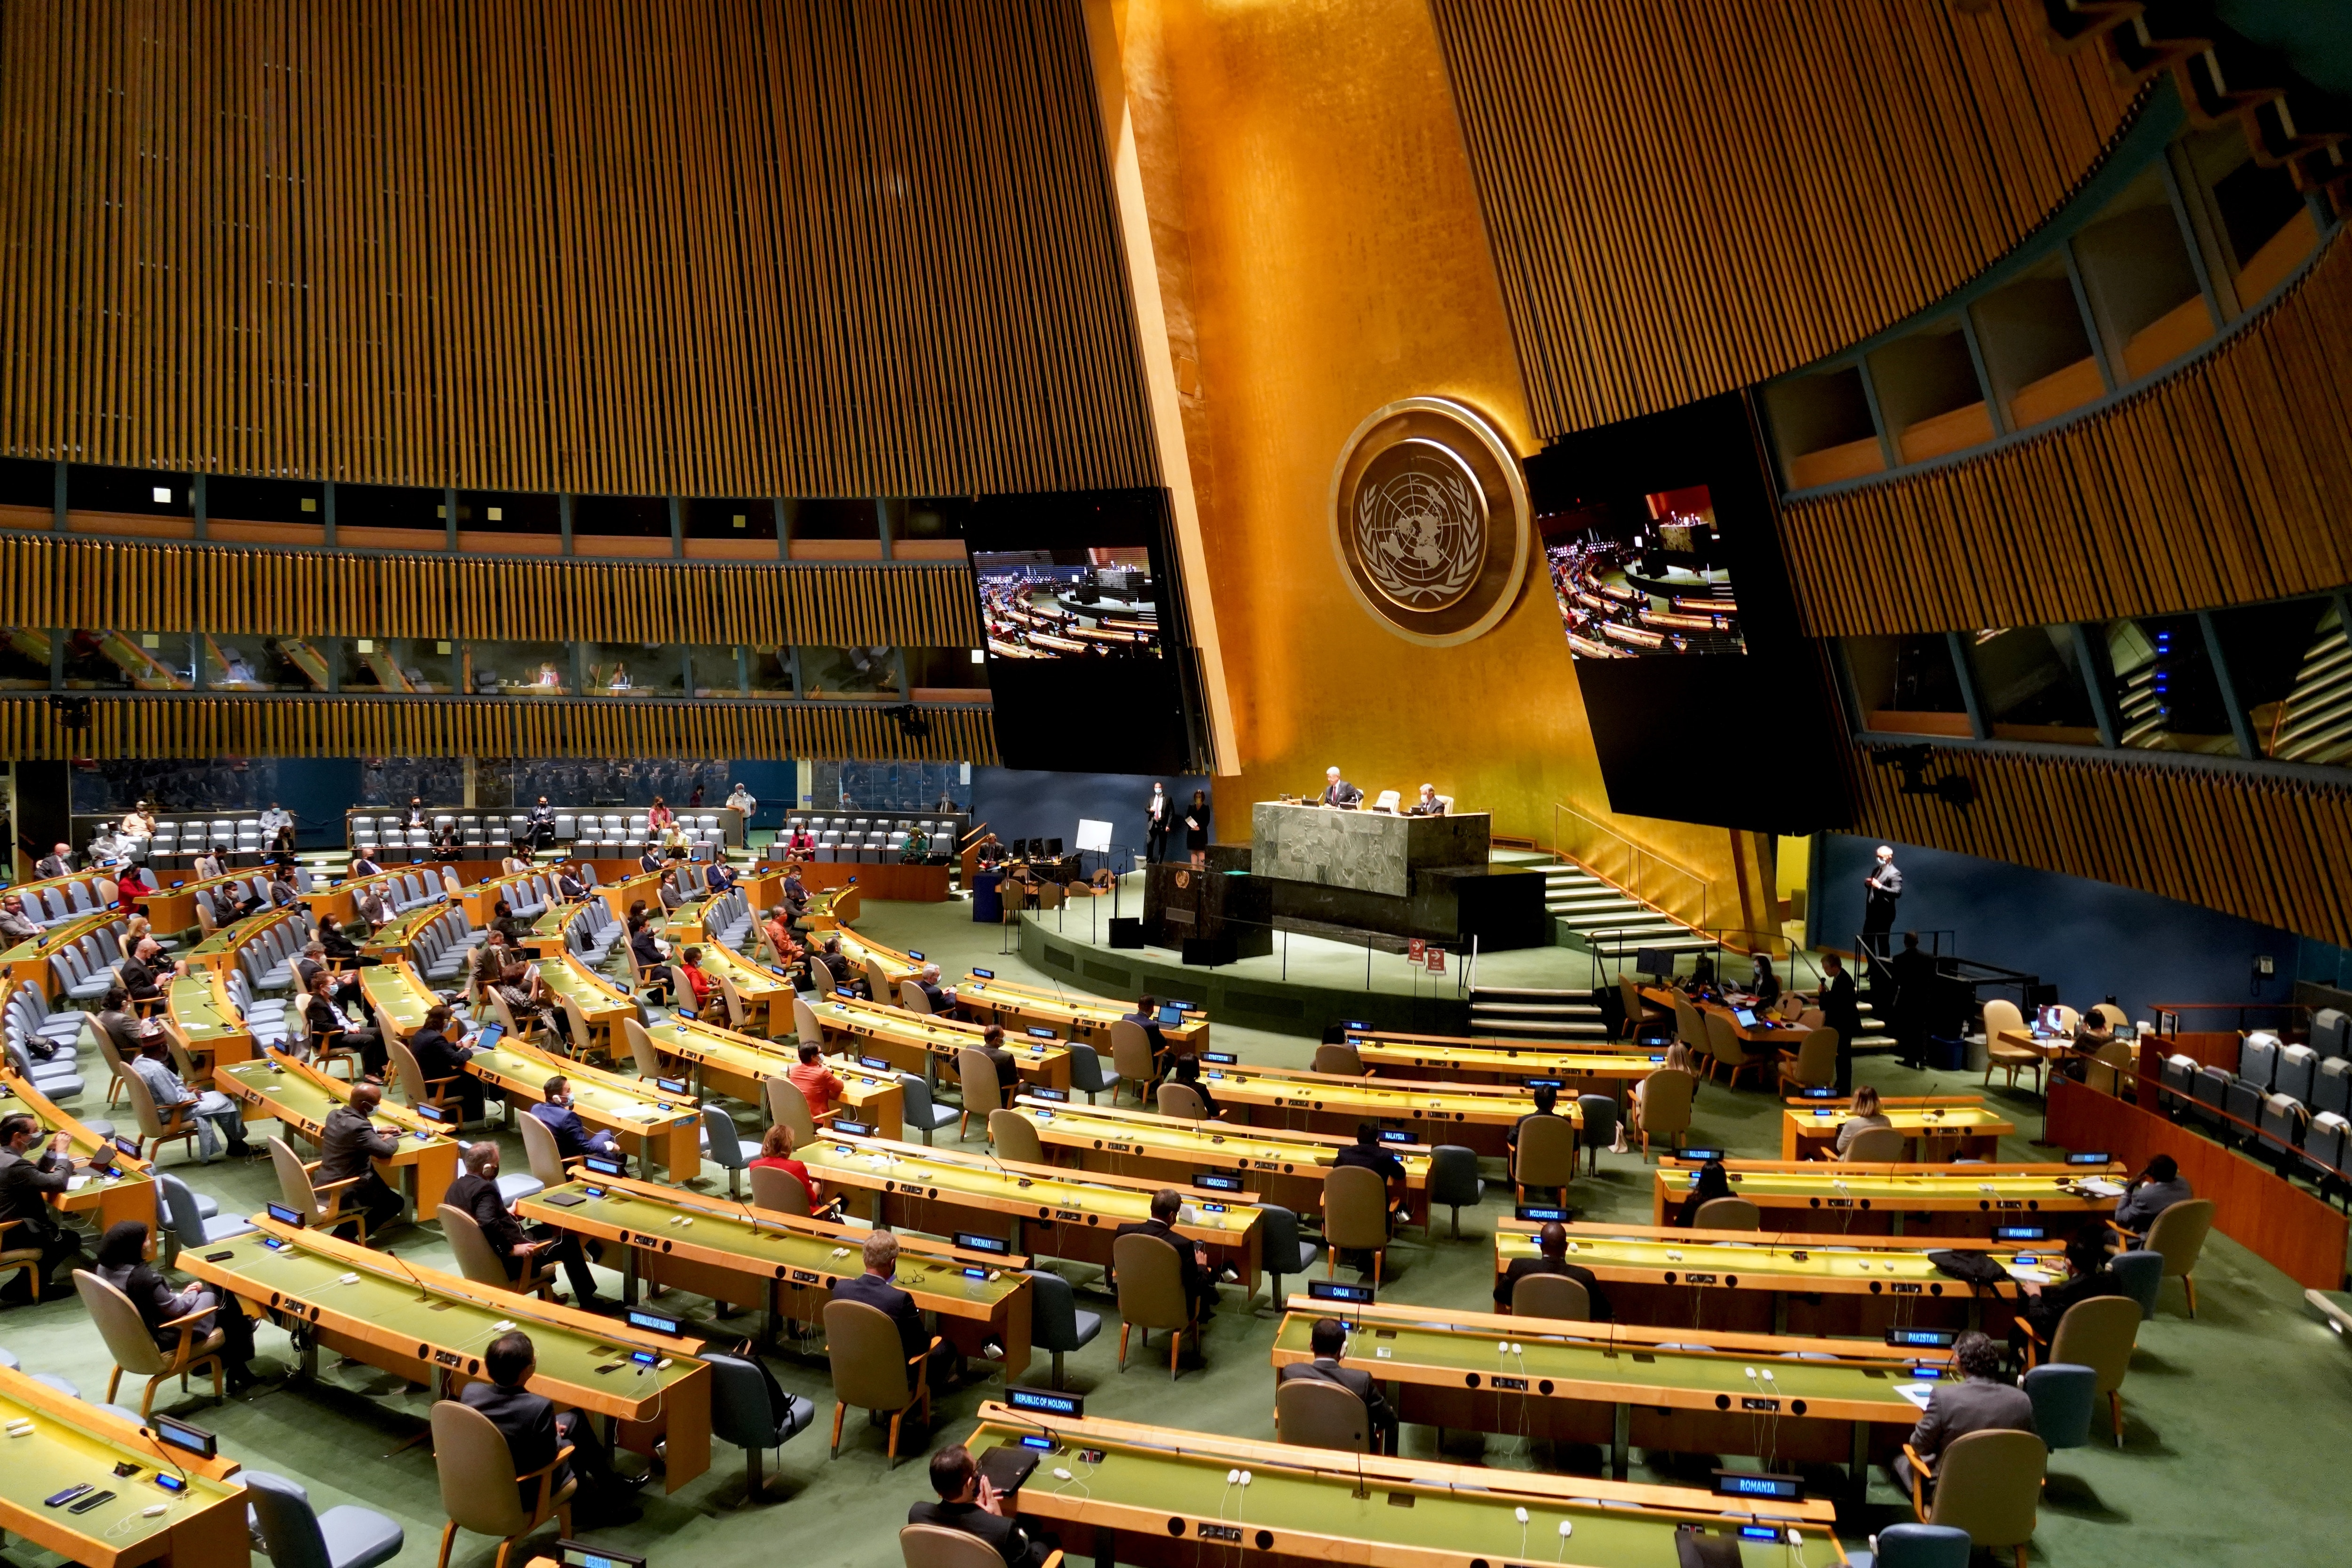 The 75th session of the UN General Assembly with delegates sitting distanced apart in the famous UNGA hall at New York Headquarters.